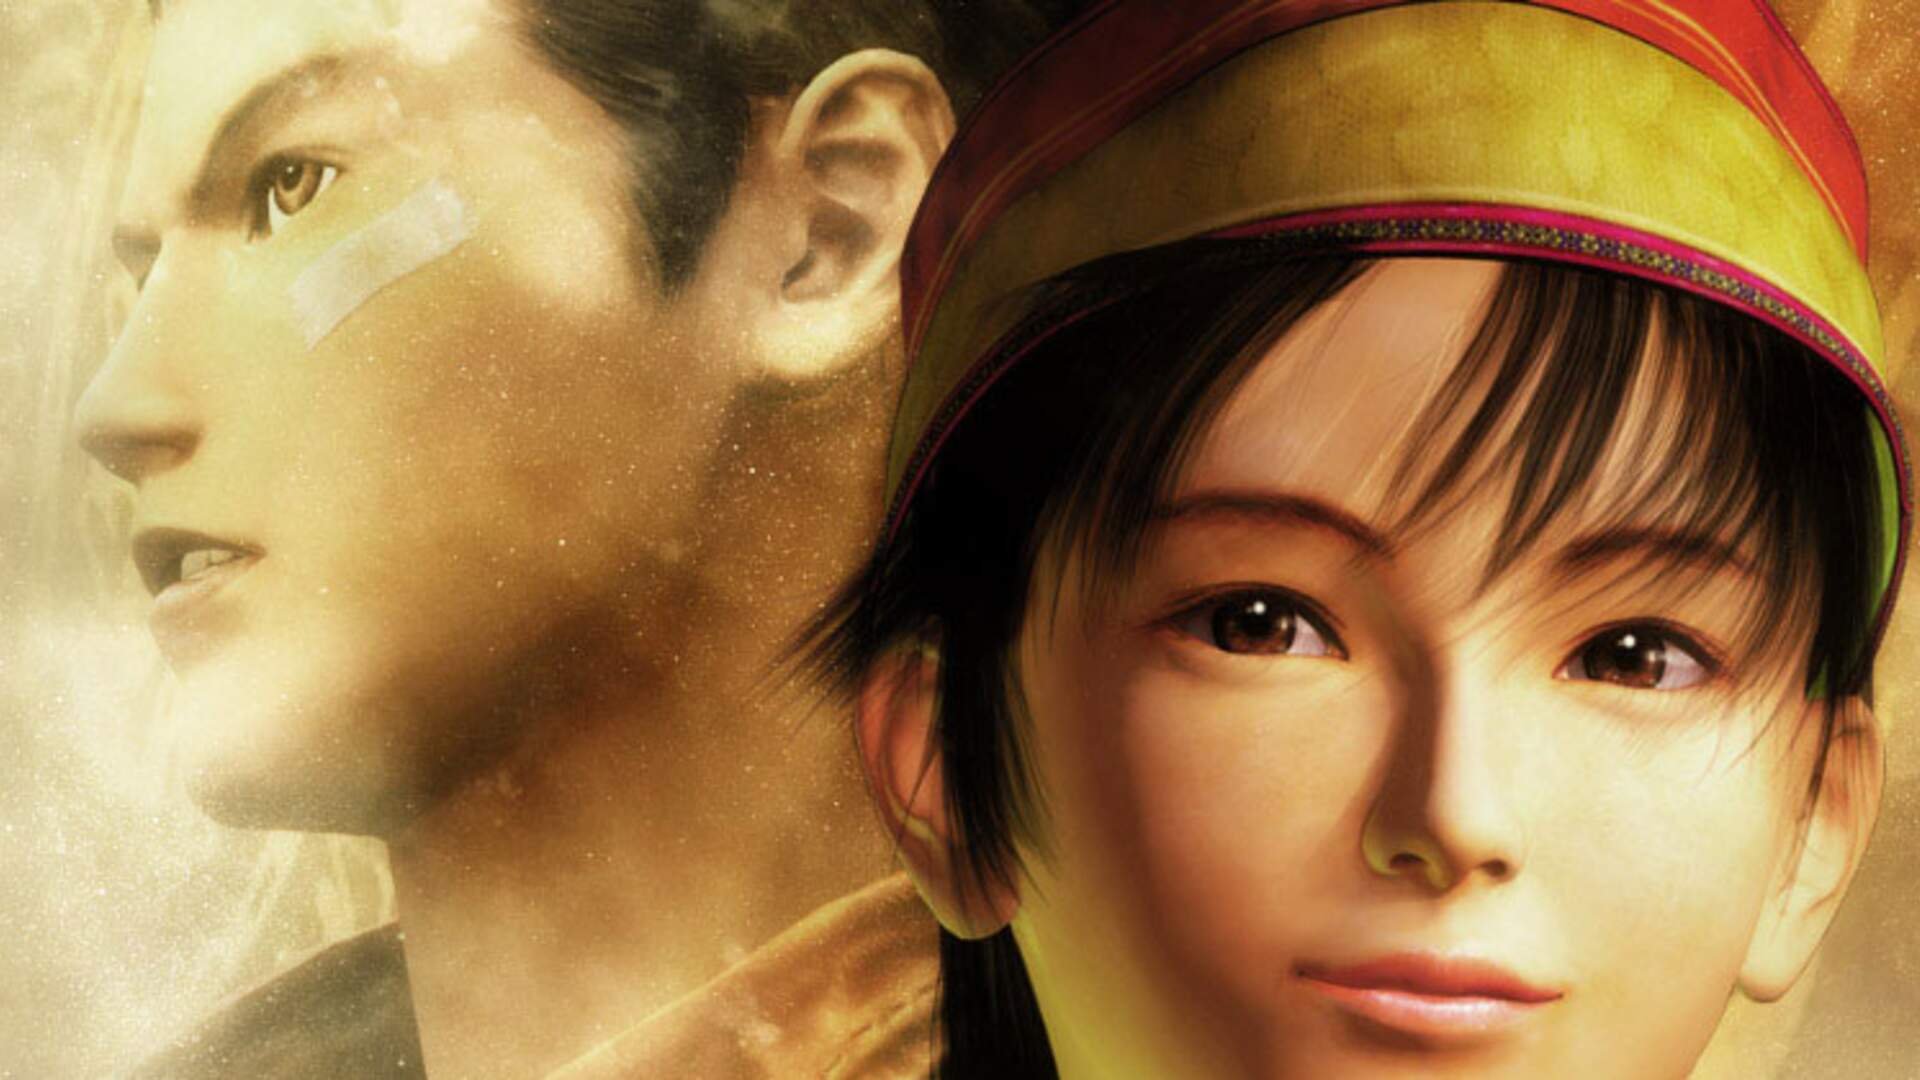 """Shenmue 3 Delayed to the """"Second Half of 2018"""""""